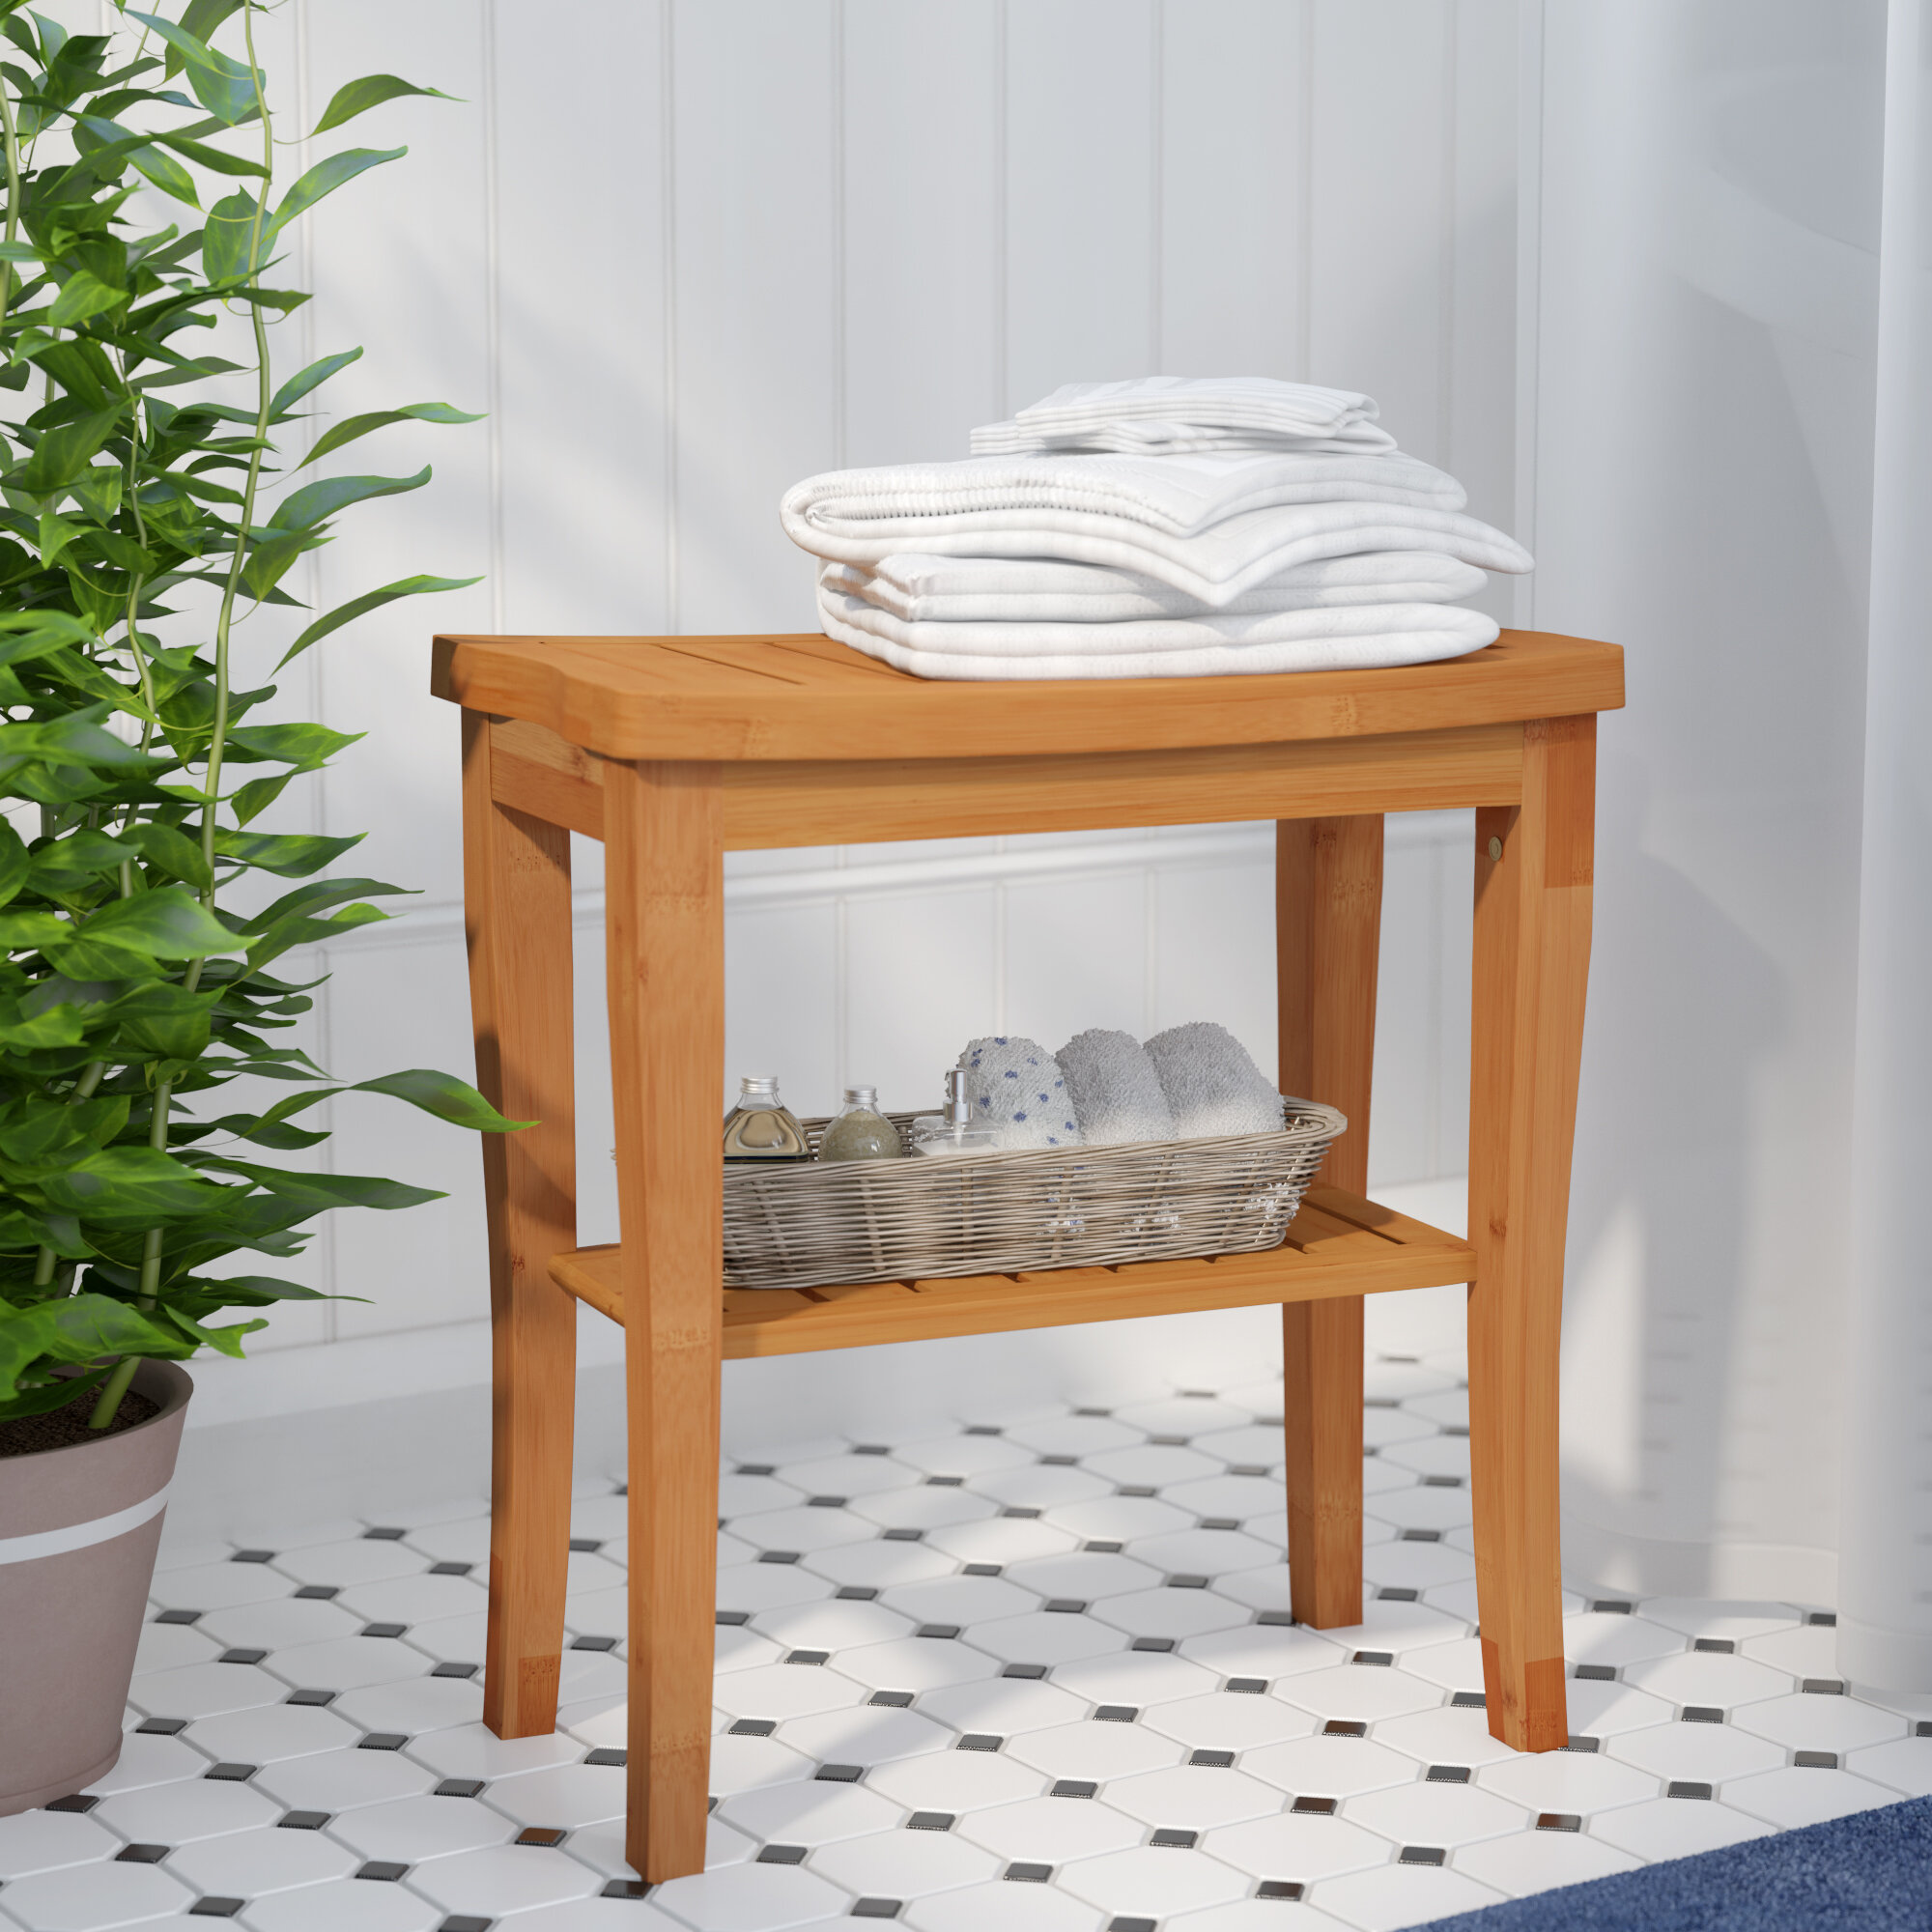 Lavish Home Shower Bench-Water Resistant Natural Bamboo with Storage Shelf for Bathroom Spa or Sauna